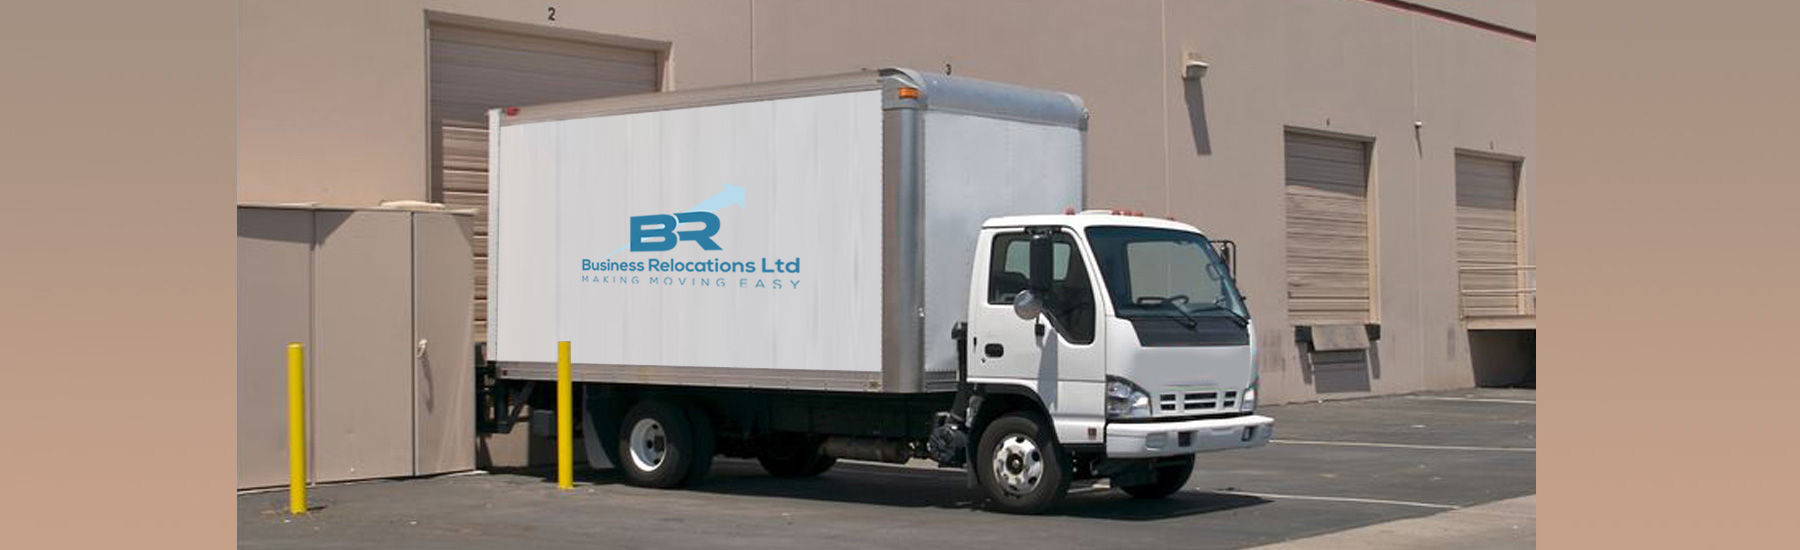 Business relocations truck